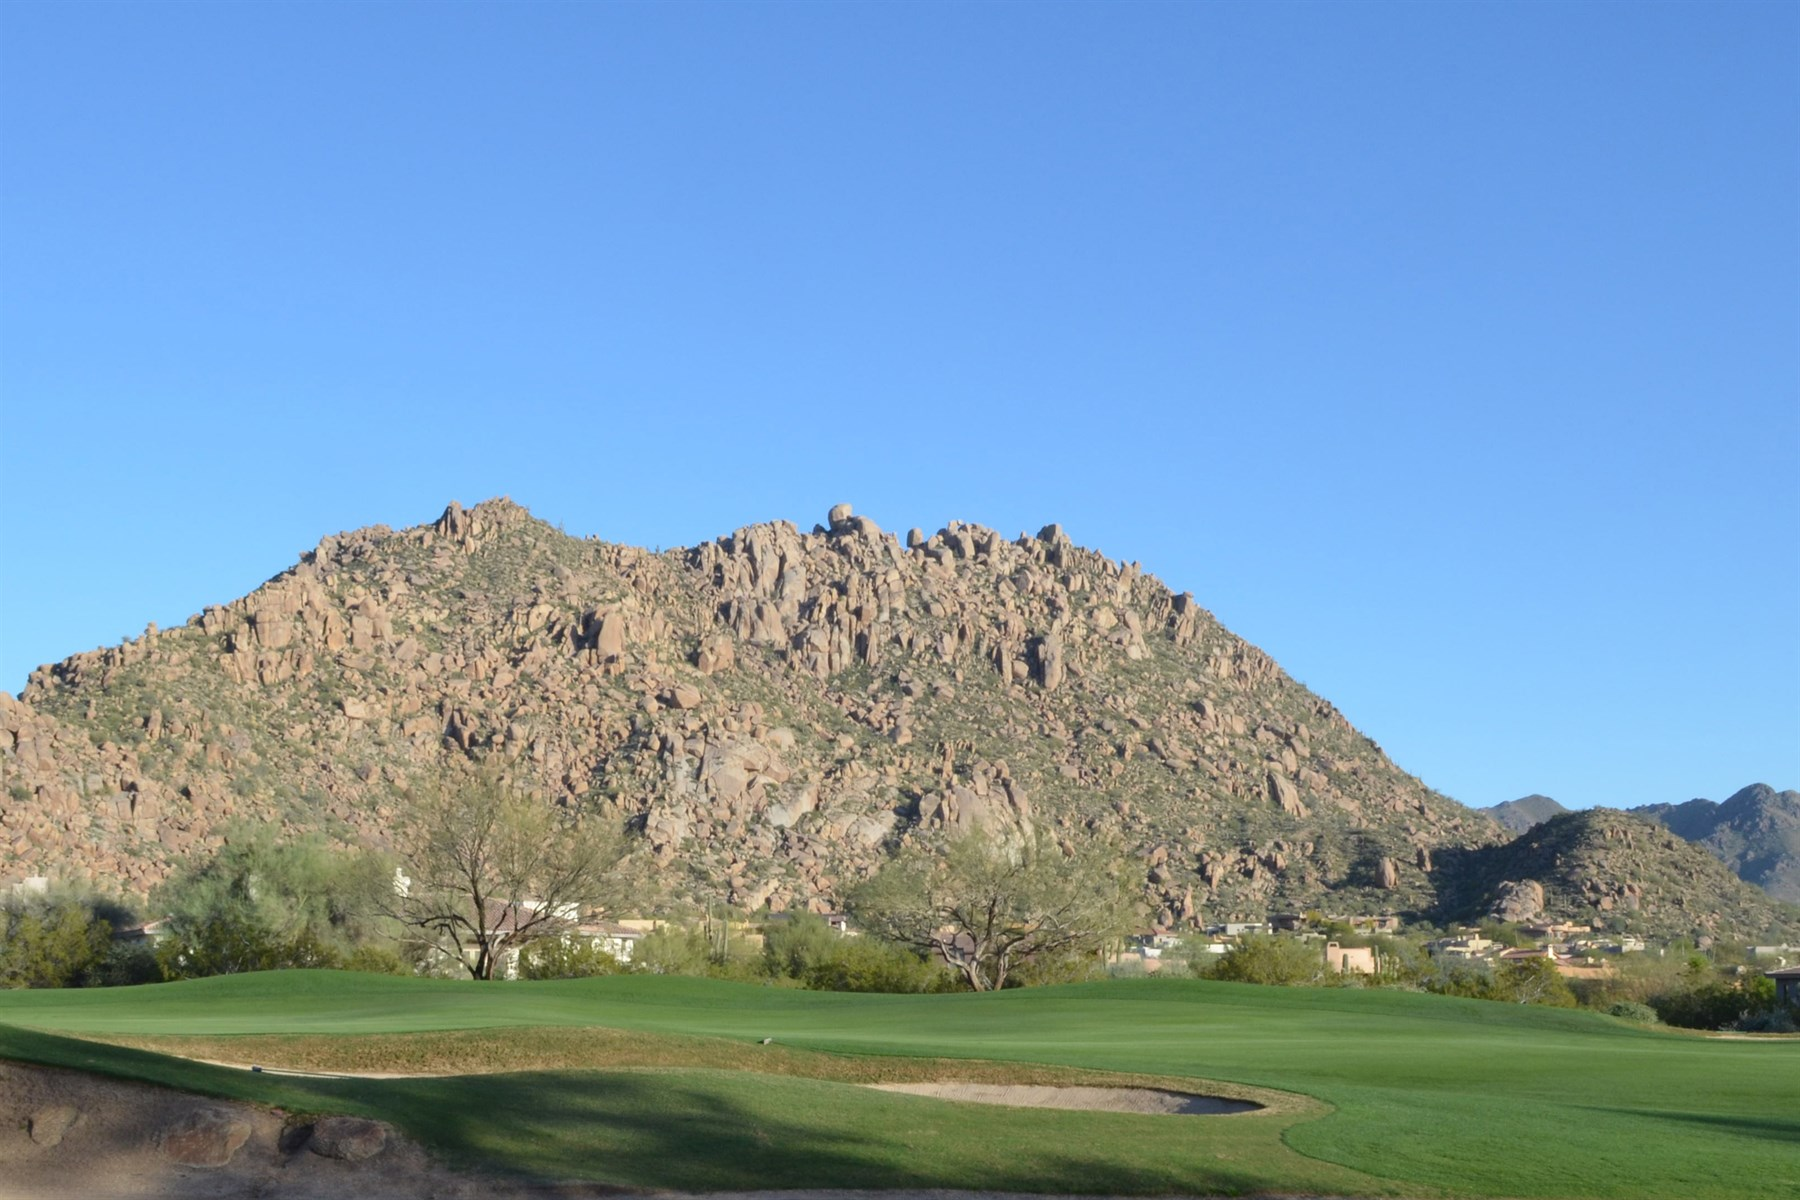 Terreno per Vendita alle ore Last premium golf course lot in guard gated Windy Walk Estates 10650 E Quartz Rock Rd #30 Scottsdale, Arizona, 85255 Stati Uniti